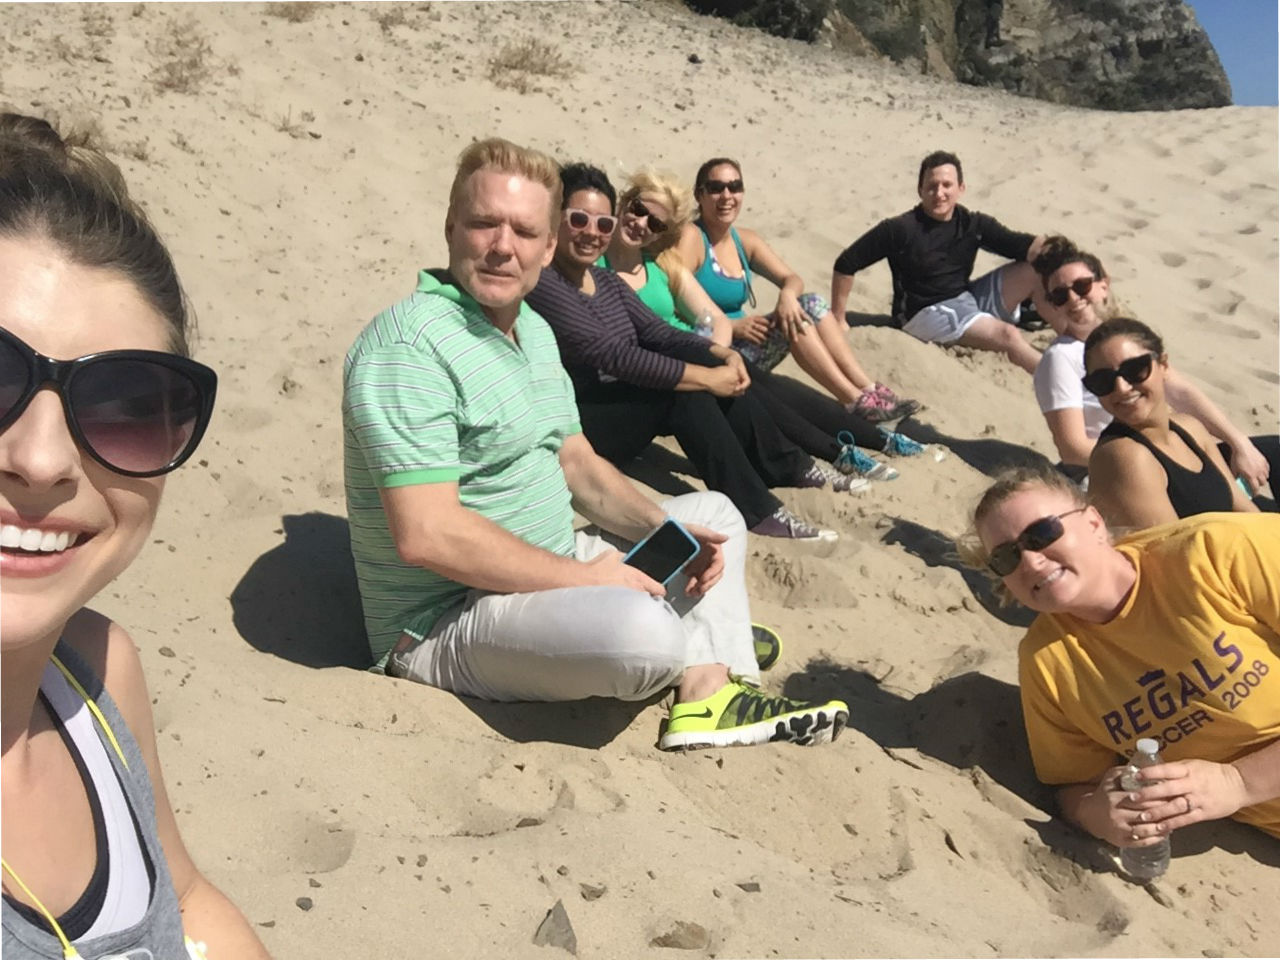 At Marketing Maven, having fun at work is built into the company culture. CEO Lindsey Carnett (bottom right) and her team keep things real by taking time together to celebrate their wins.